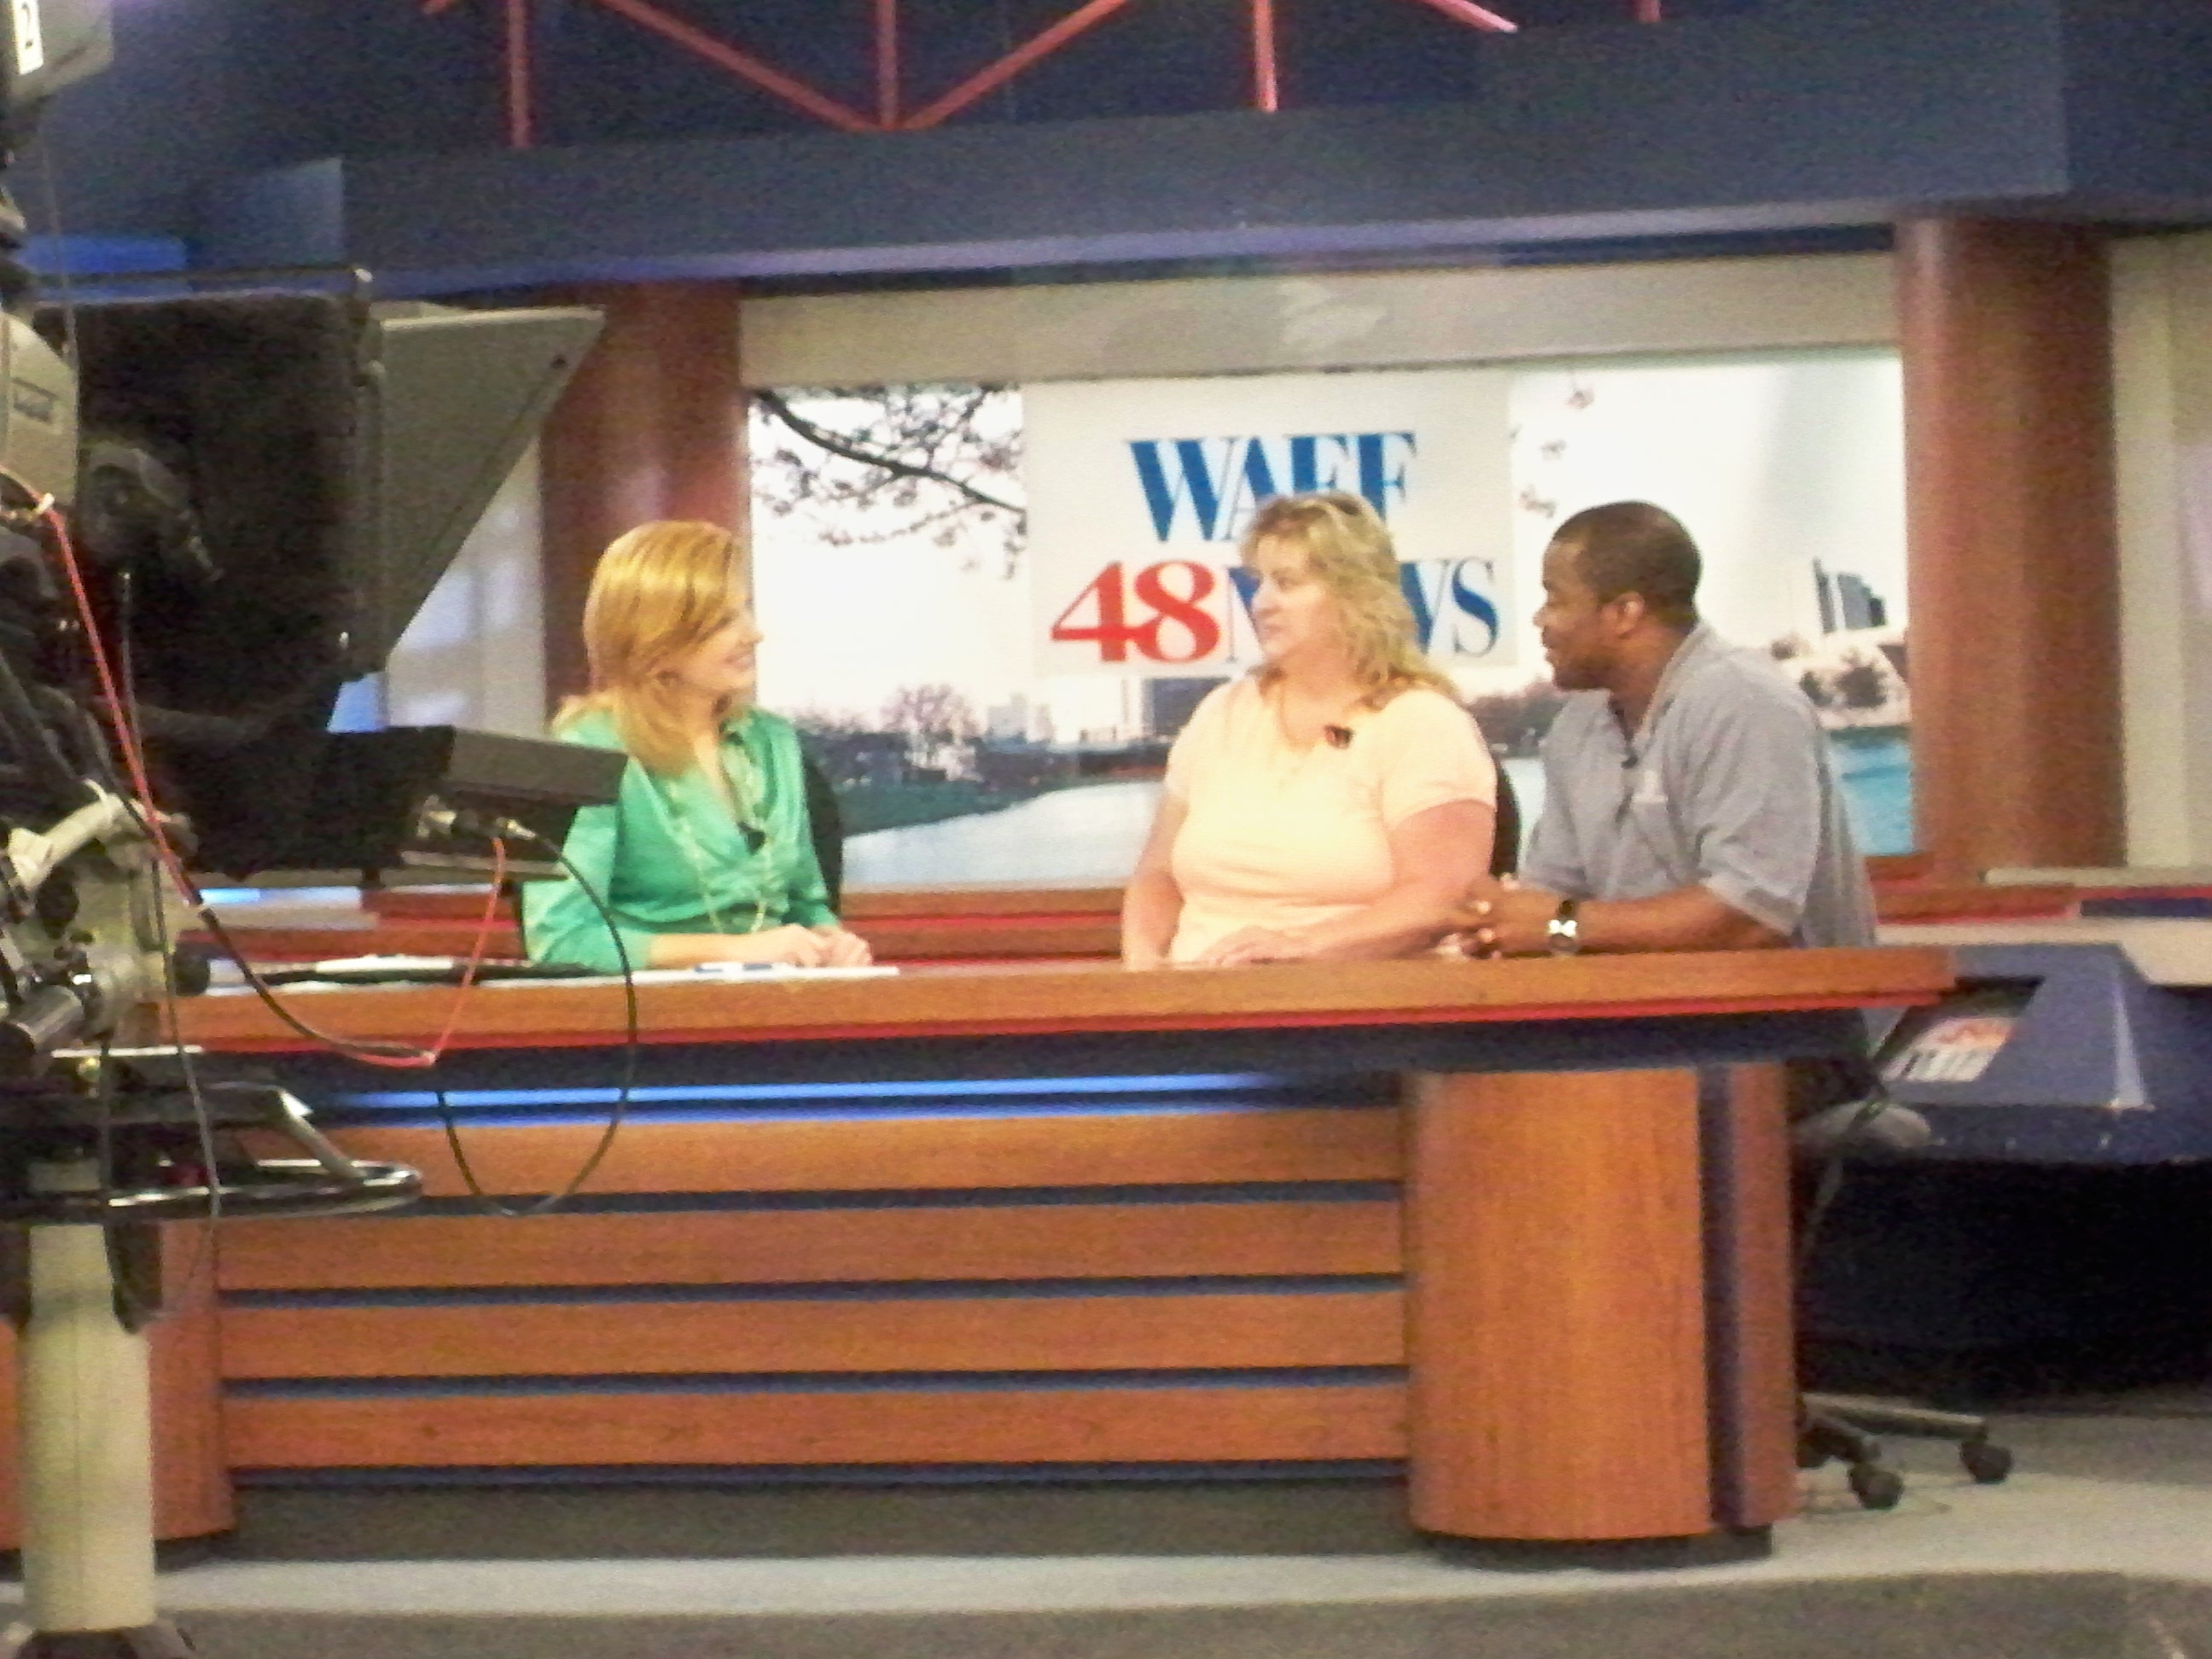 WAFF Interview Lee Marshall, Mellissa Meeks and Travis Evans